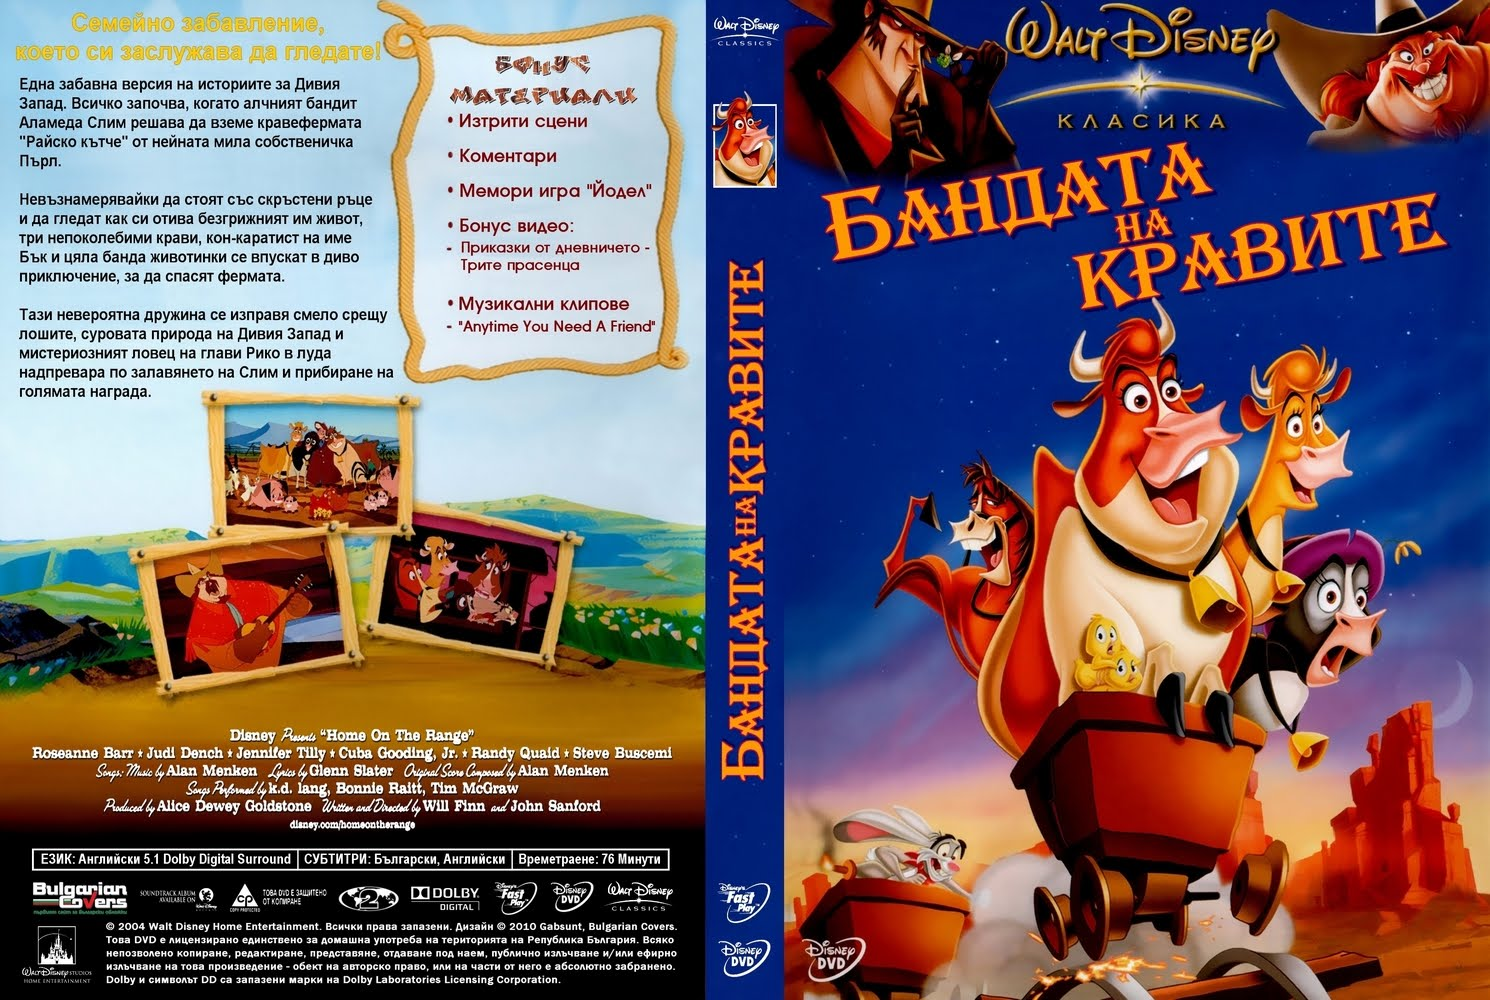 bulgariancovers home on the range 2004 r1 custom dvd cover. Black Bedroom Furniture Sets. Home Design Ideas